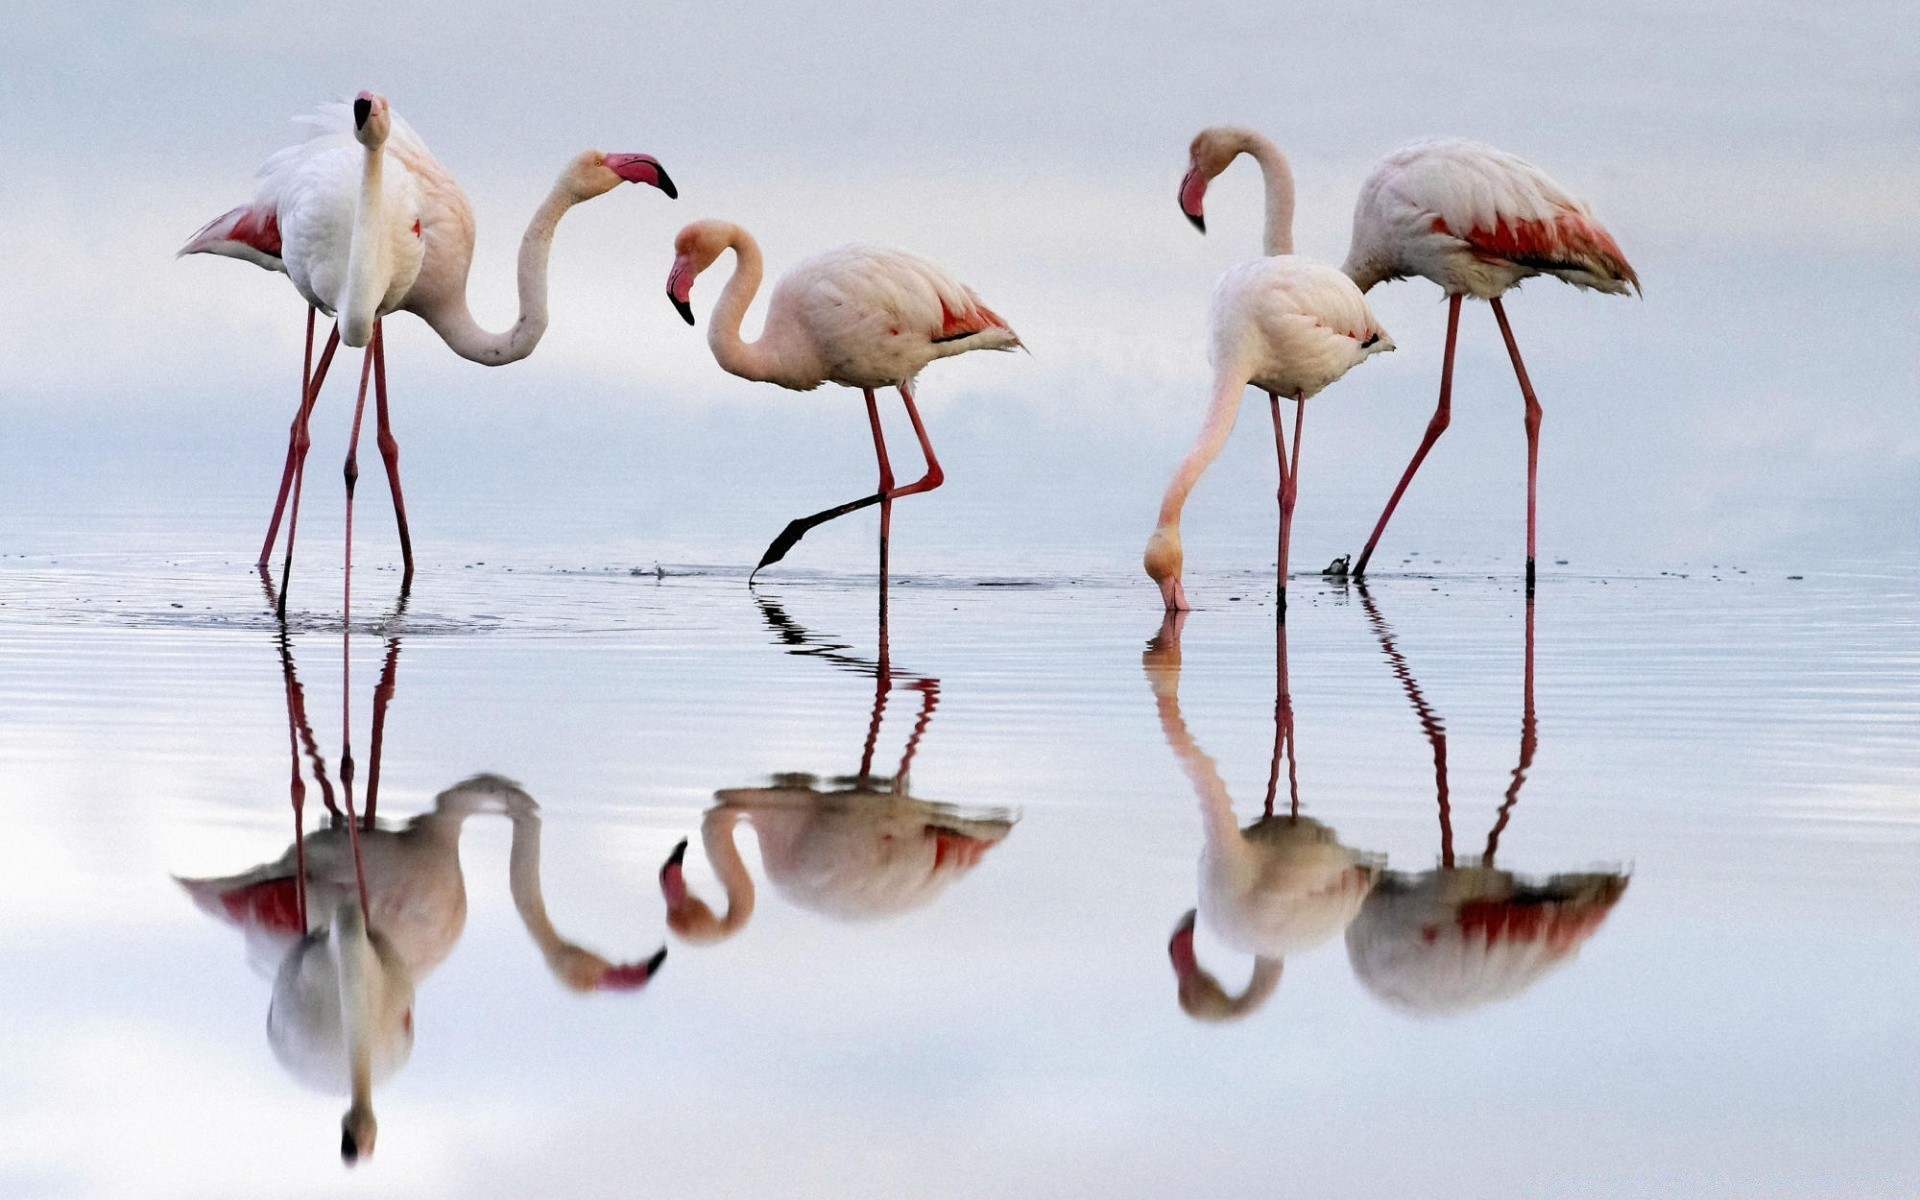 flamingo bird wildlife animal nature wild neck feather beak water stork wing outdoors flight lake